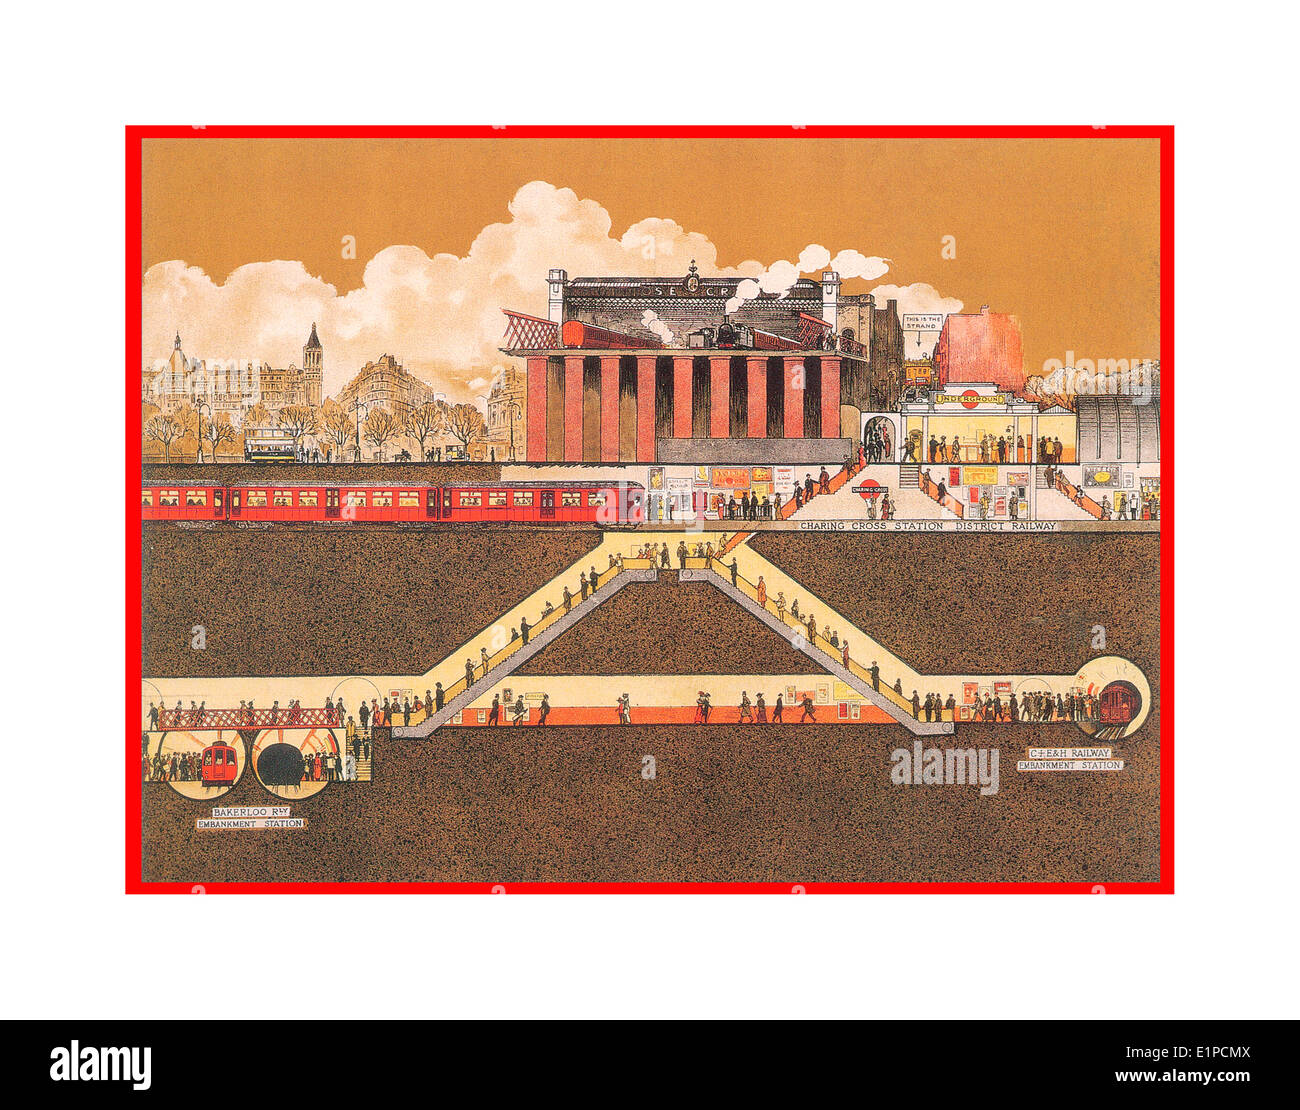 Vintage poster cutaway illustration of London Underground tube system with above ground rail in early 1900's - Stock Image